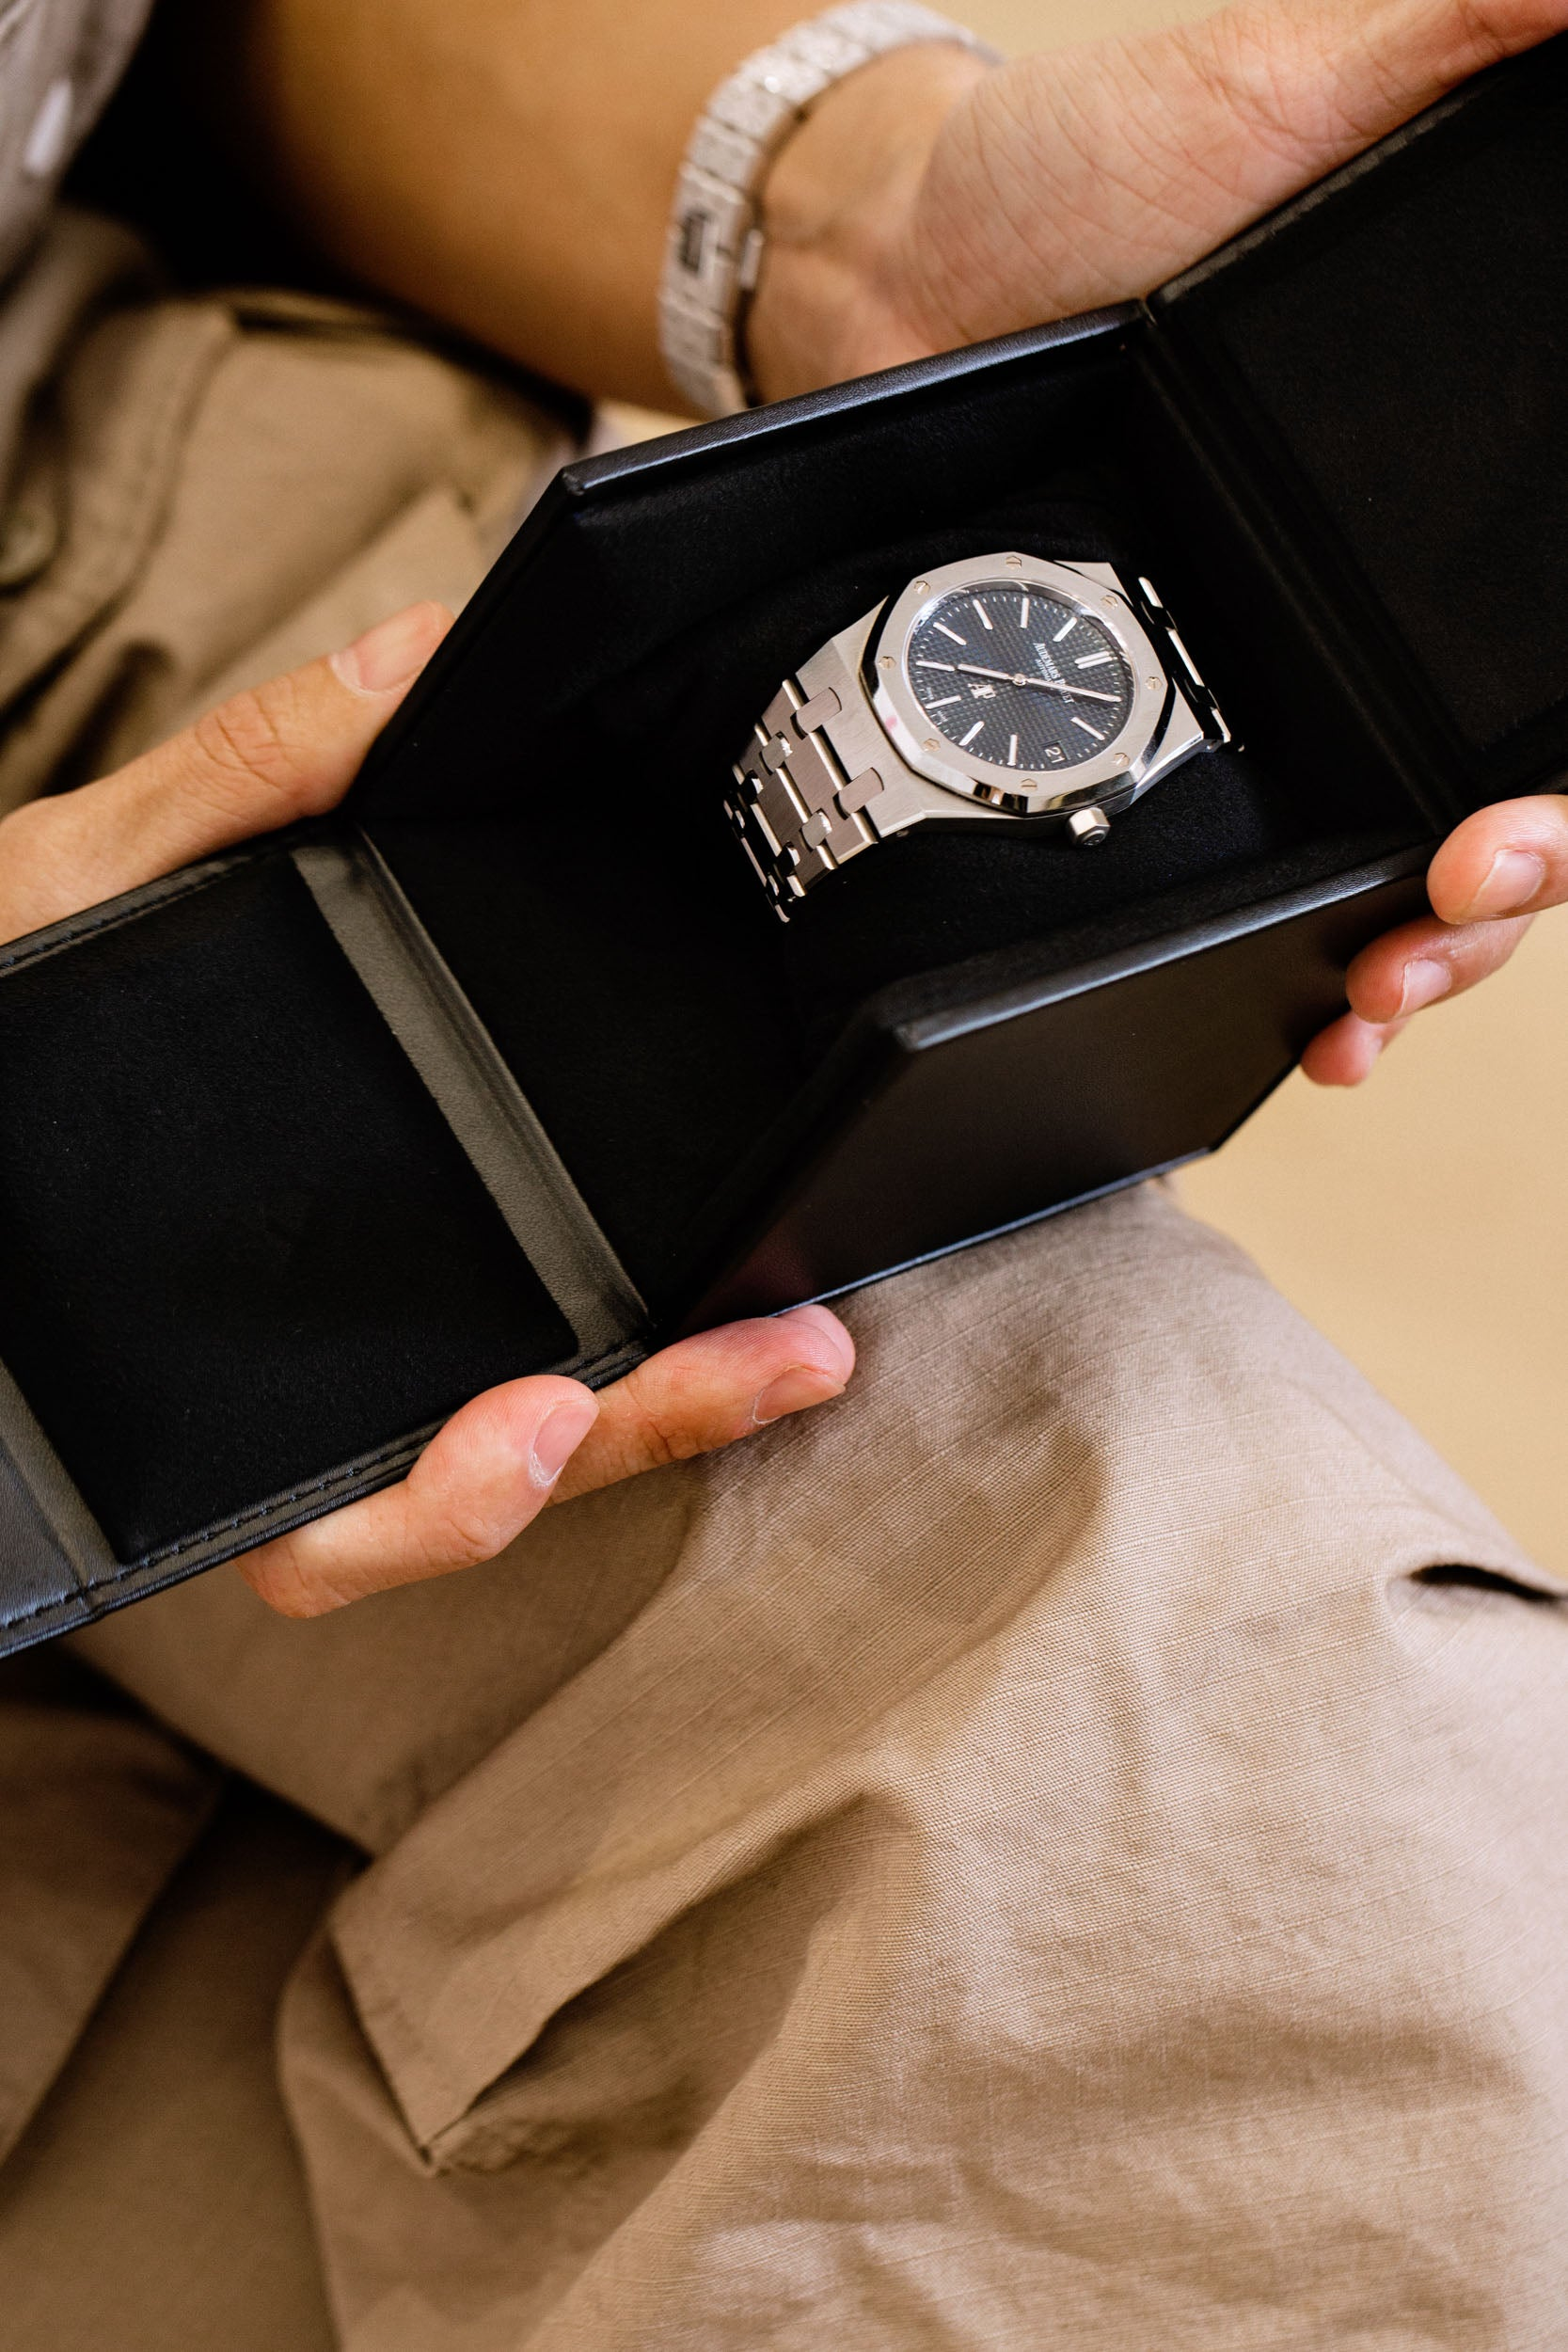 Audemars Piguet Royal Oak ref. 15202 owned by Kevin Poon in Obsessions Contemporary Culture with Kevin Poon for A Collected Man London